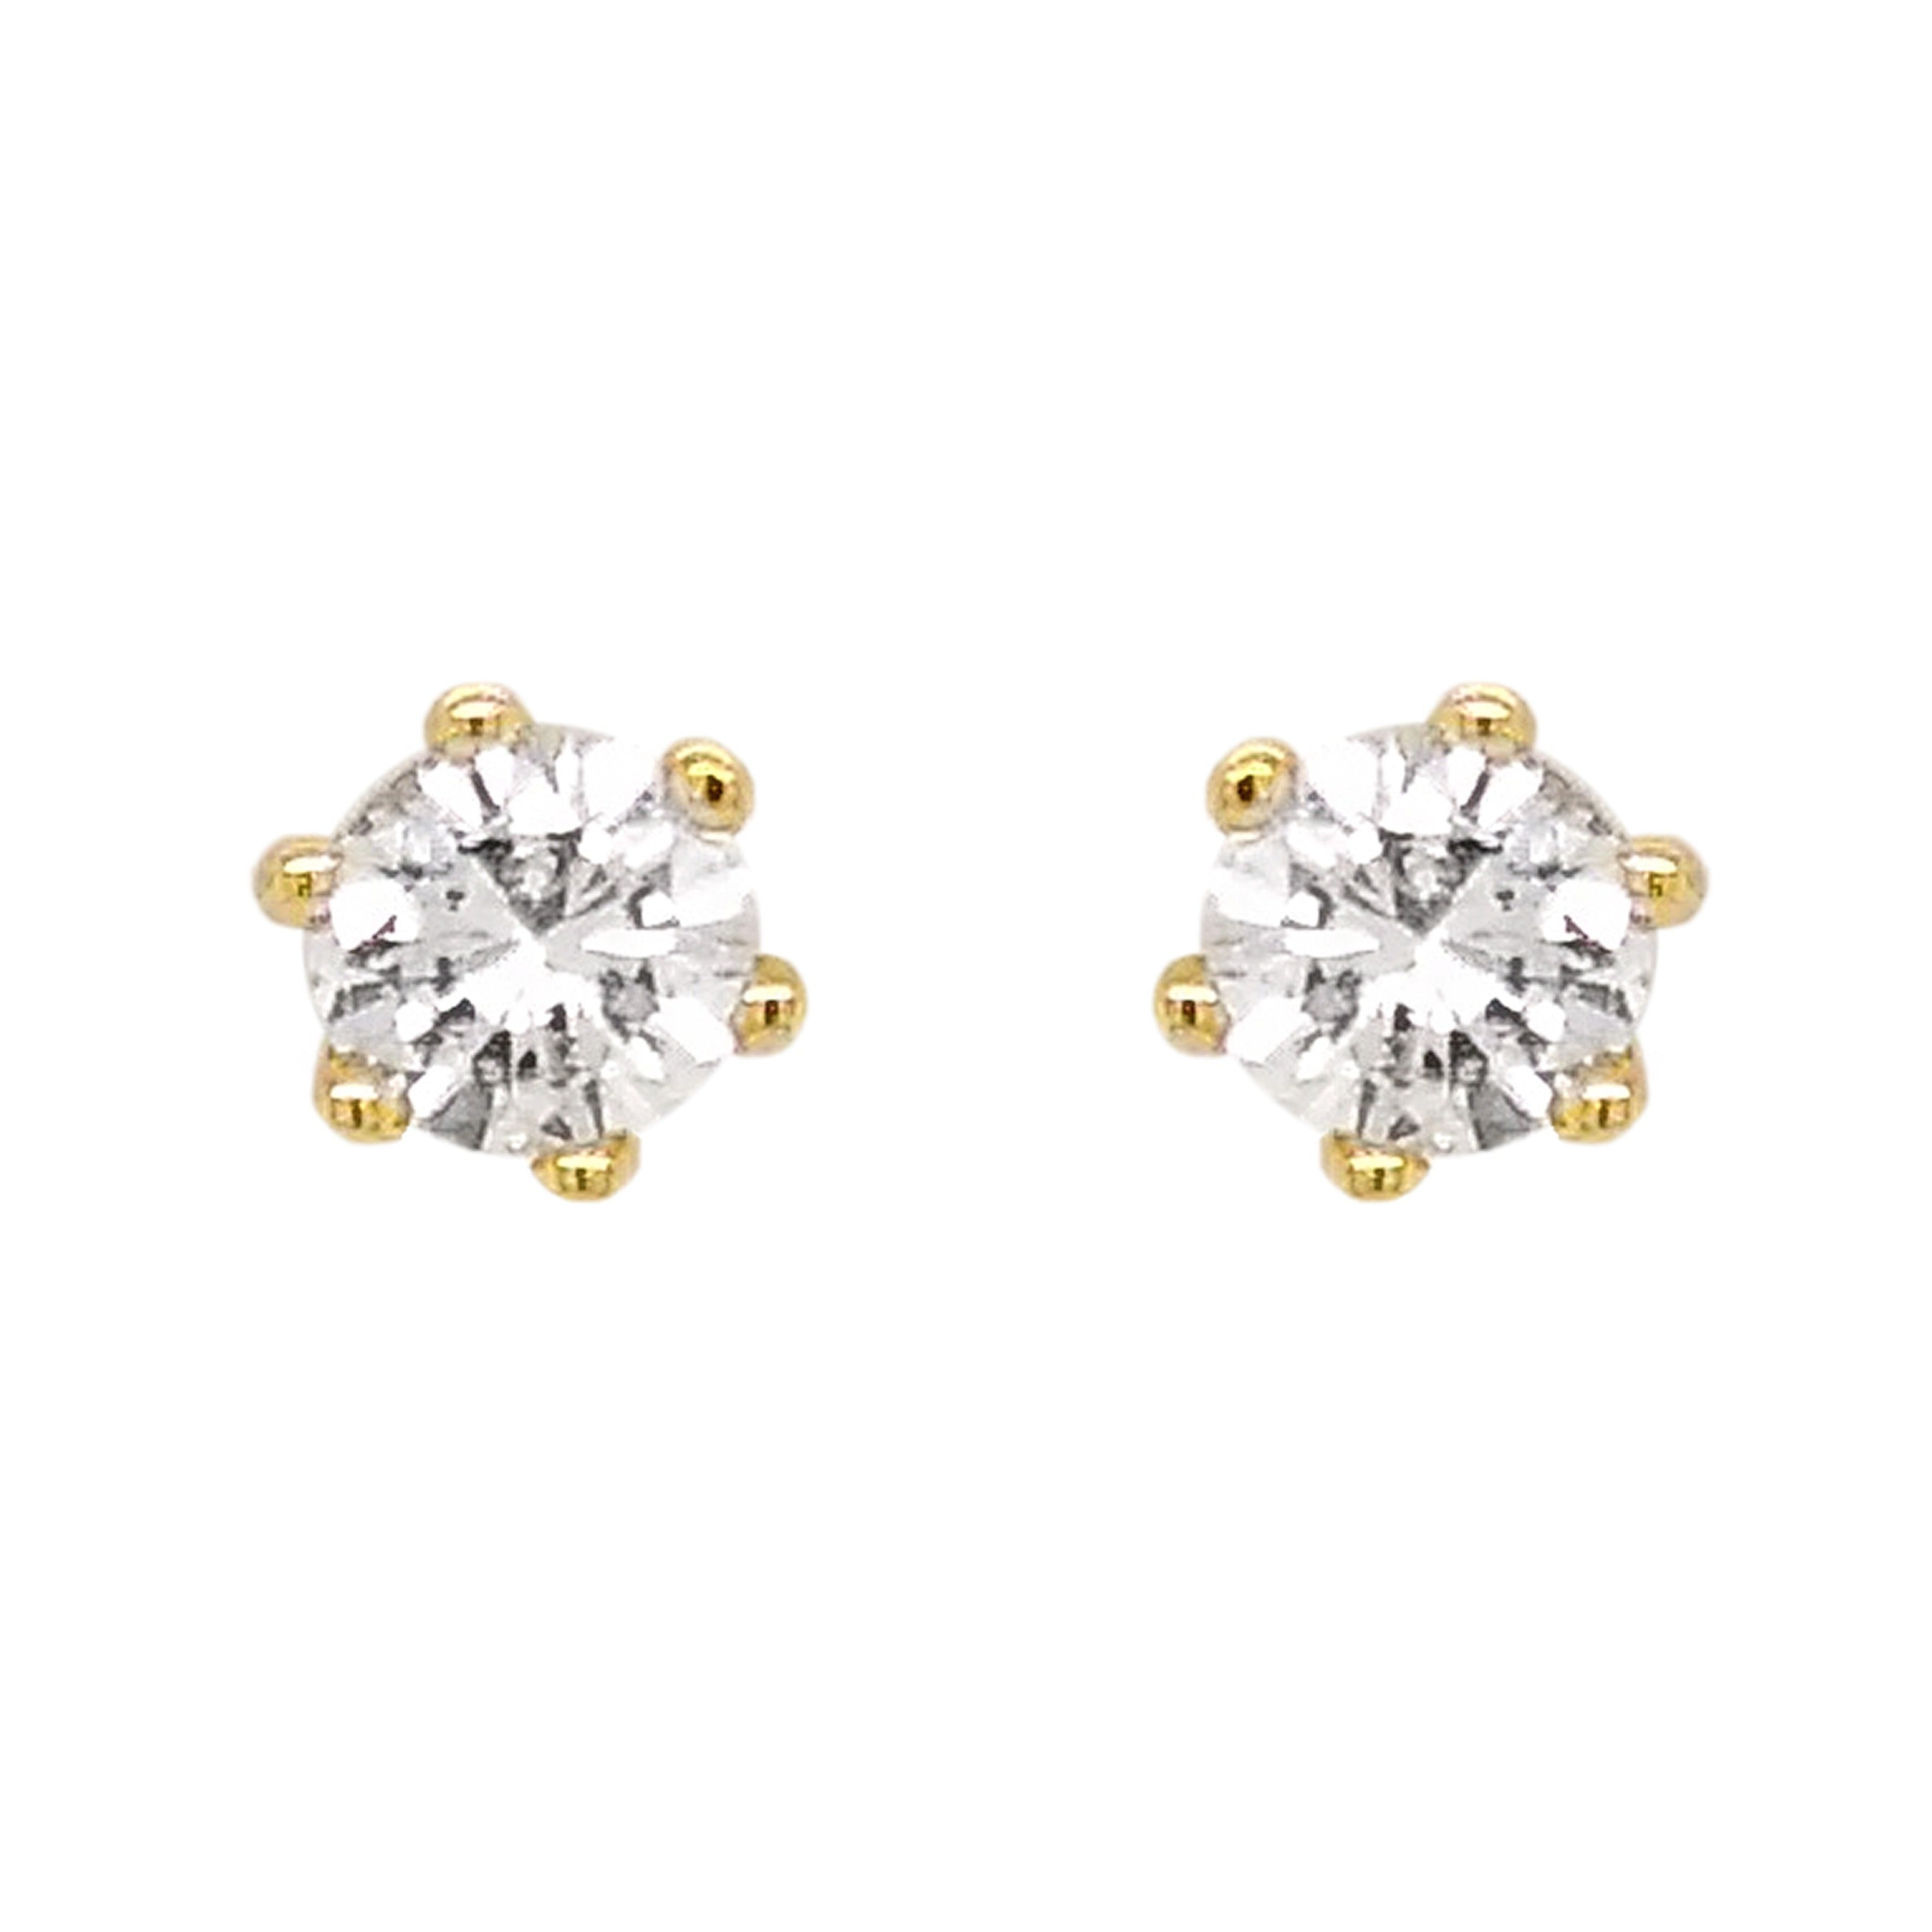 18ct Yellow Gold Six Claw Diamond Stud Earrings